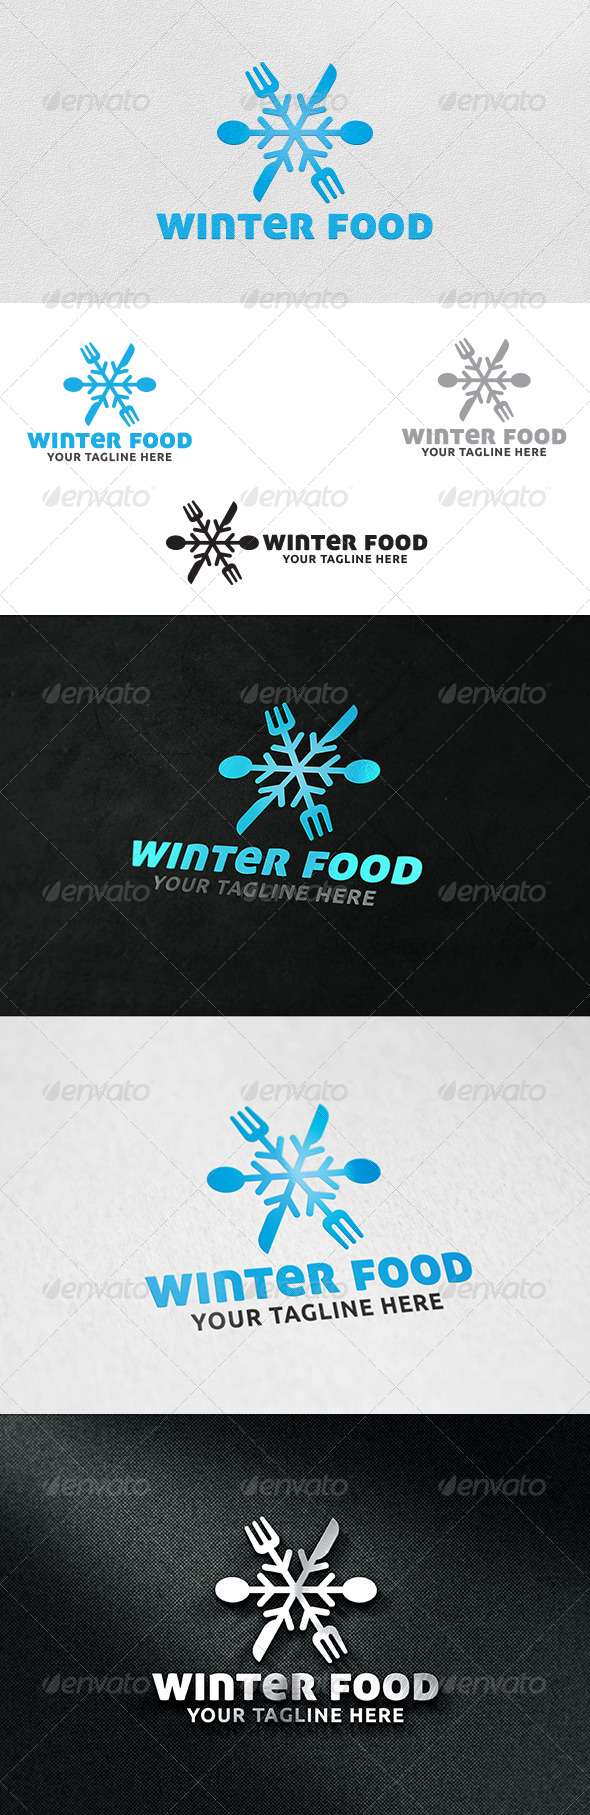 GraphicRiver Winter Food V2 Logo Template 6196888